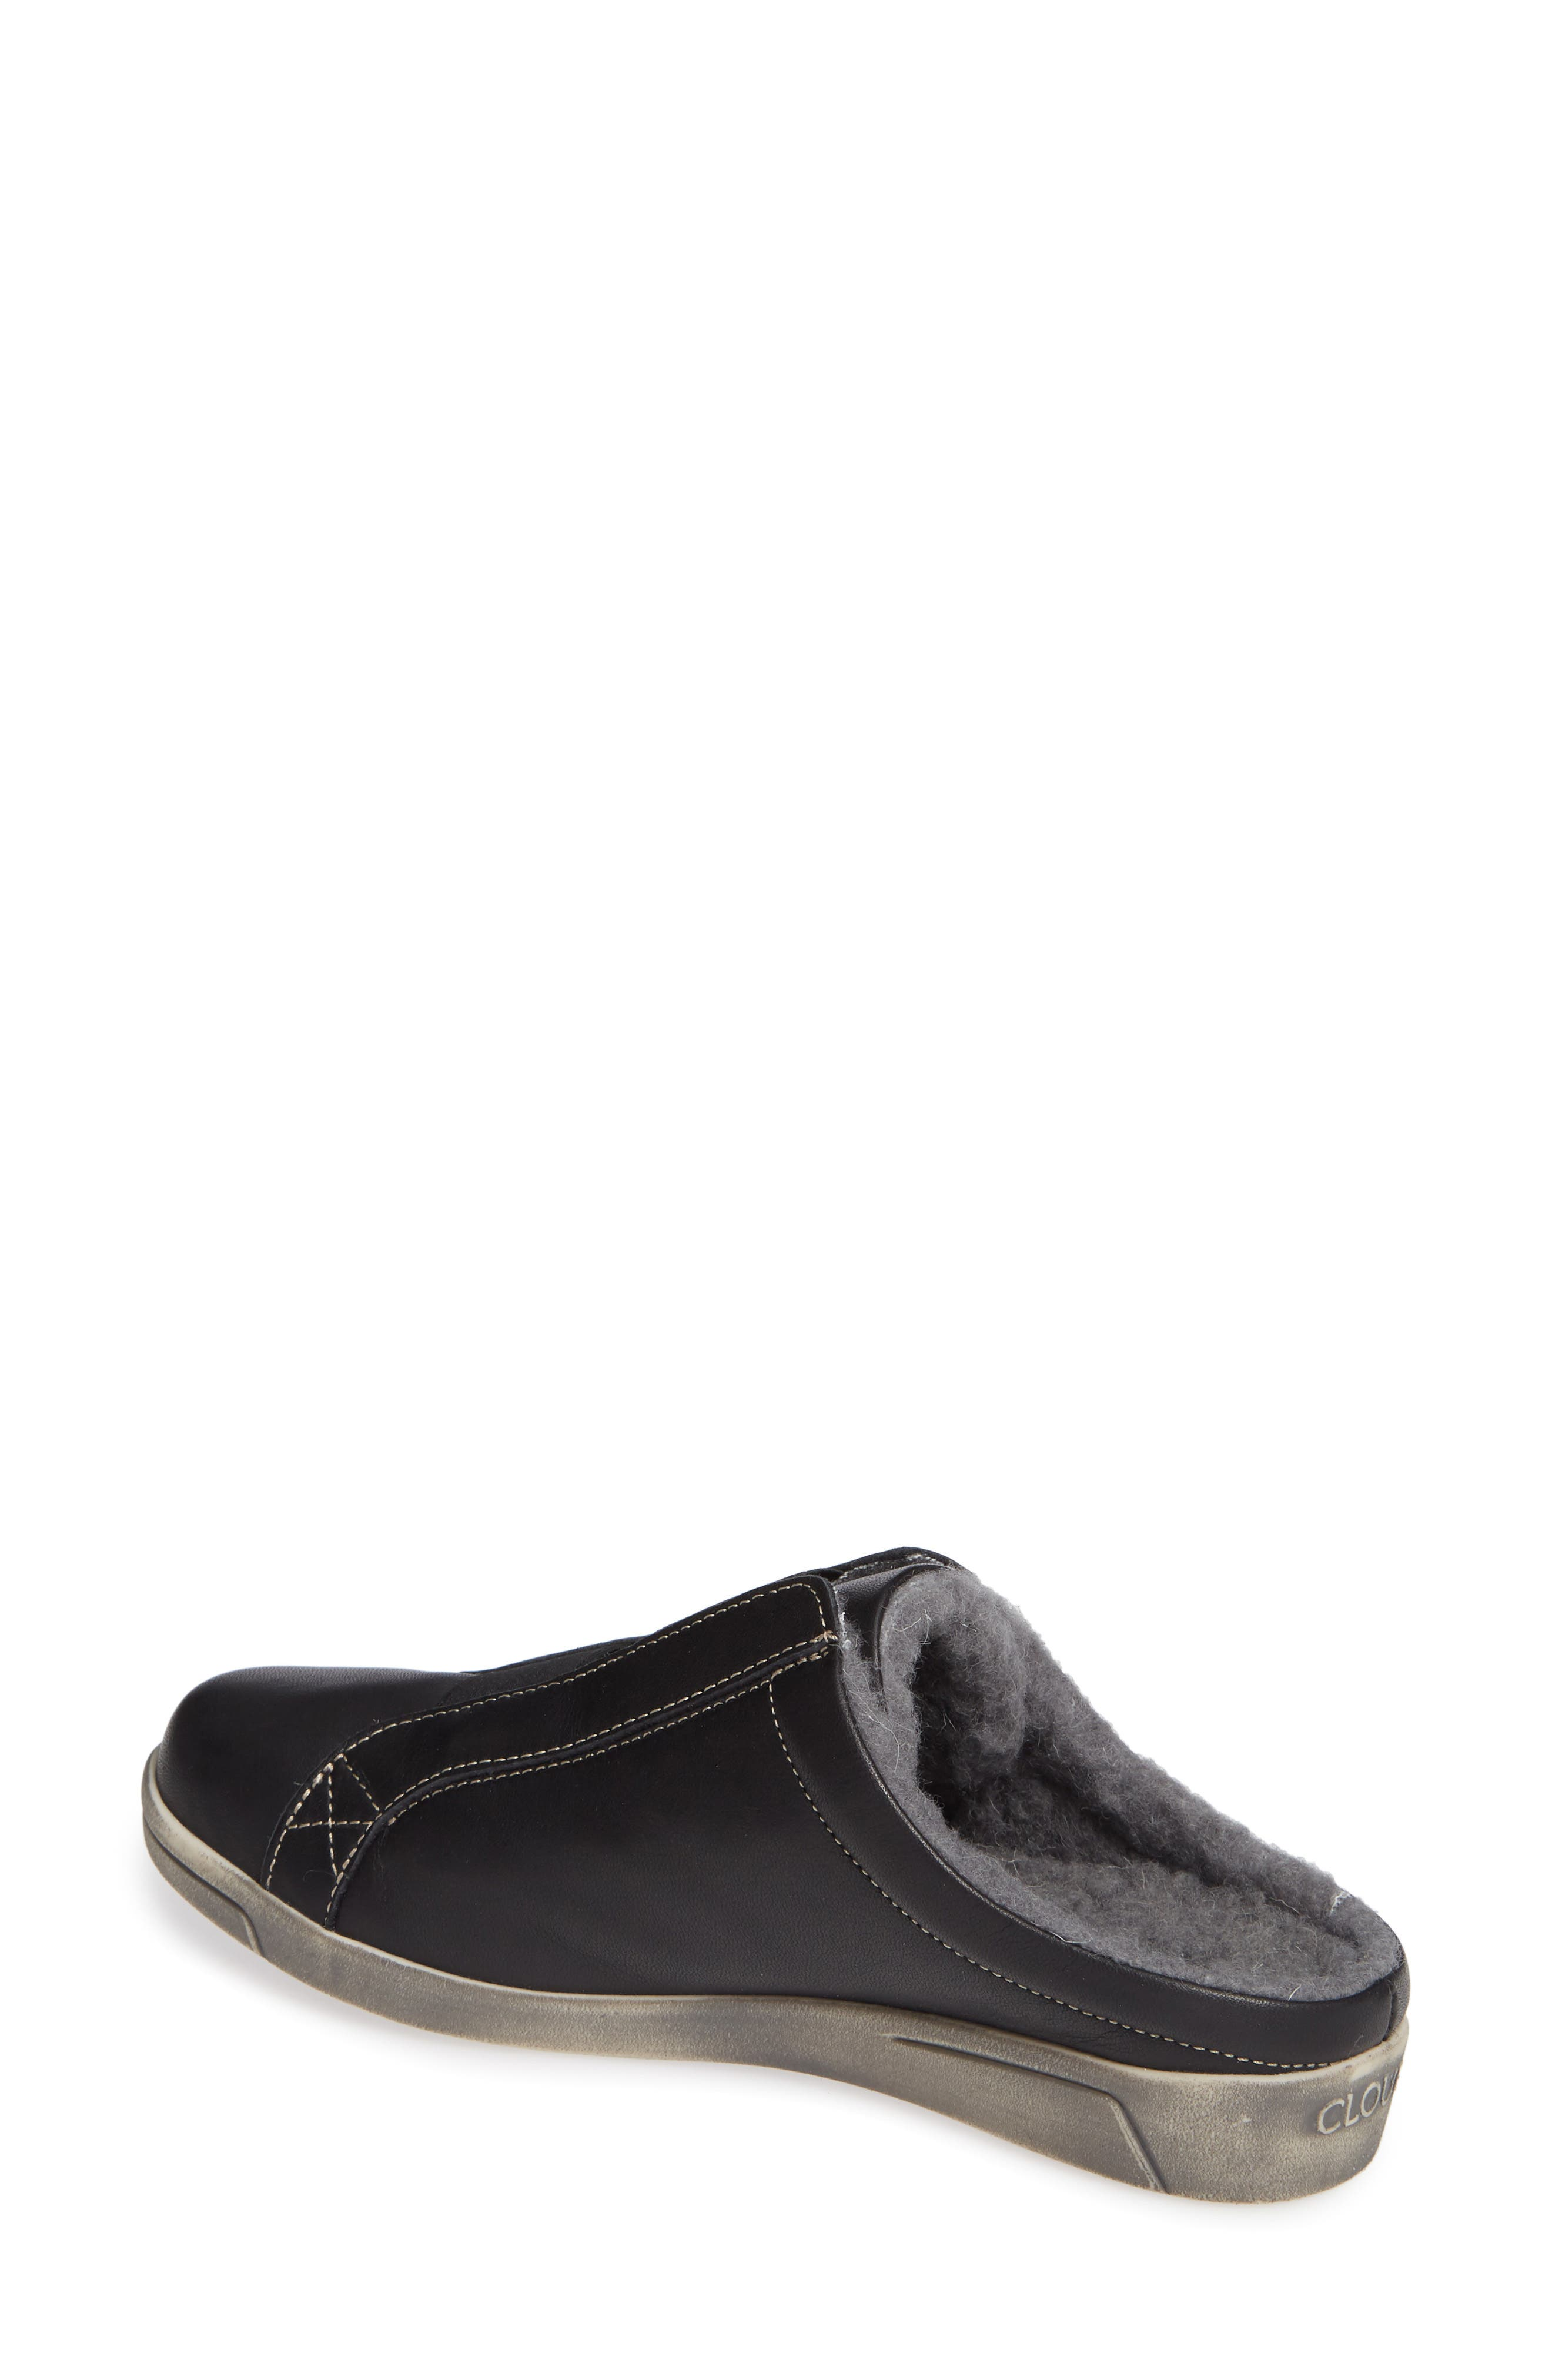 Alexis Wool Lined Backless Sneaker,                             Alternate thumbnail 2, color,                             BLACK LEATHER